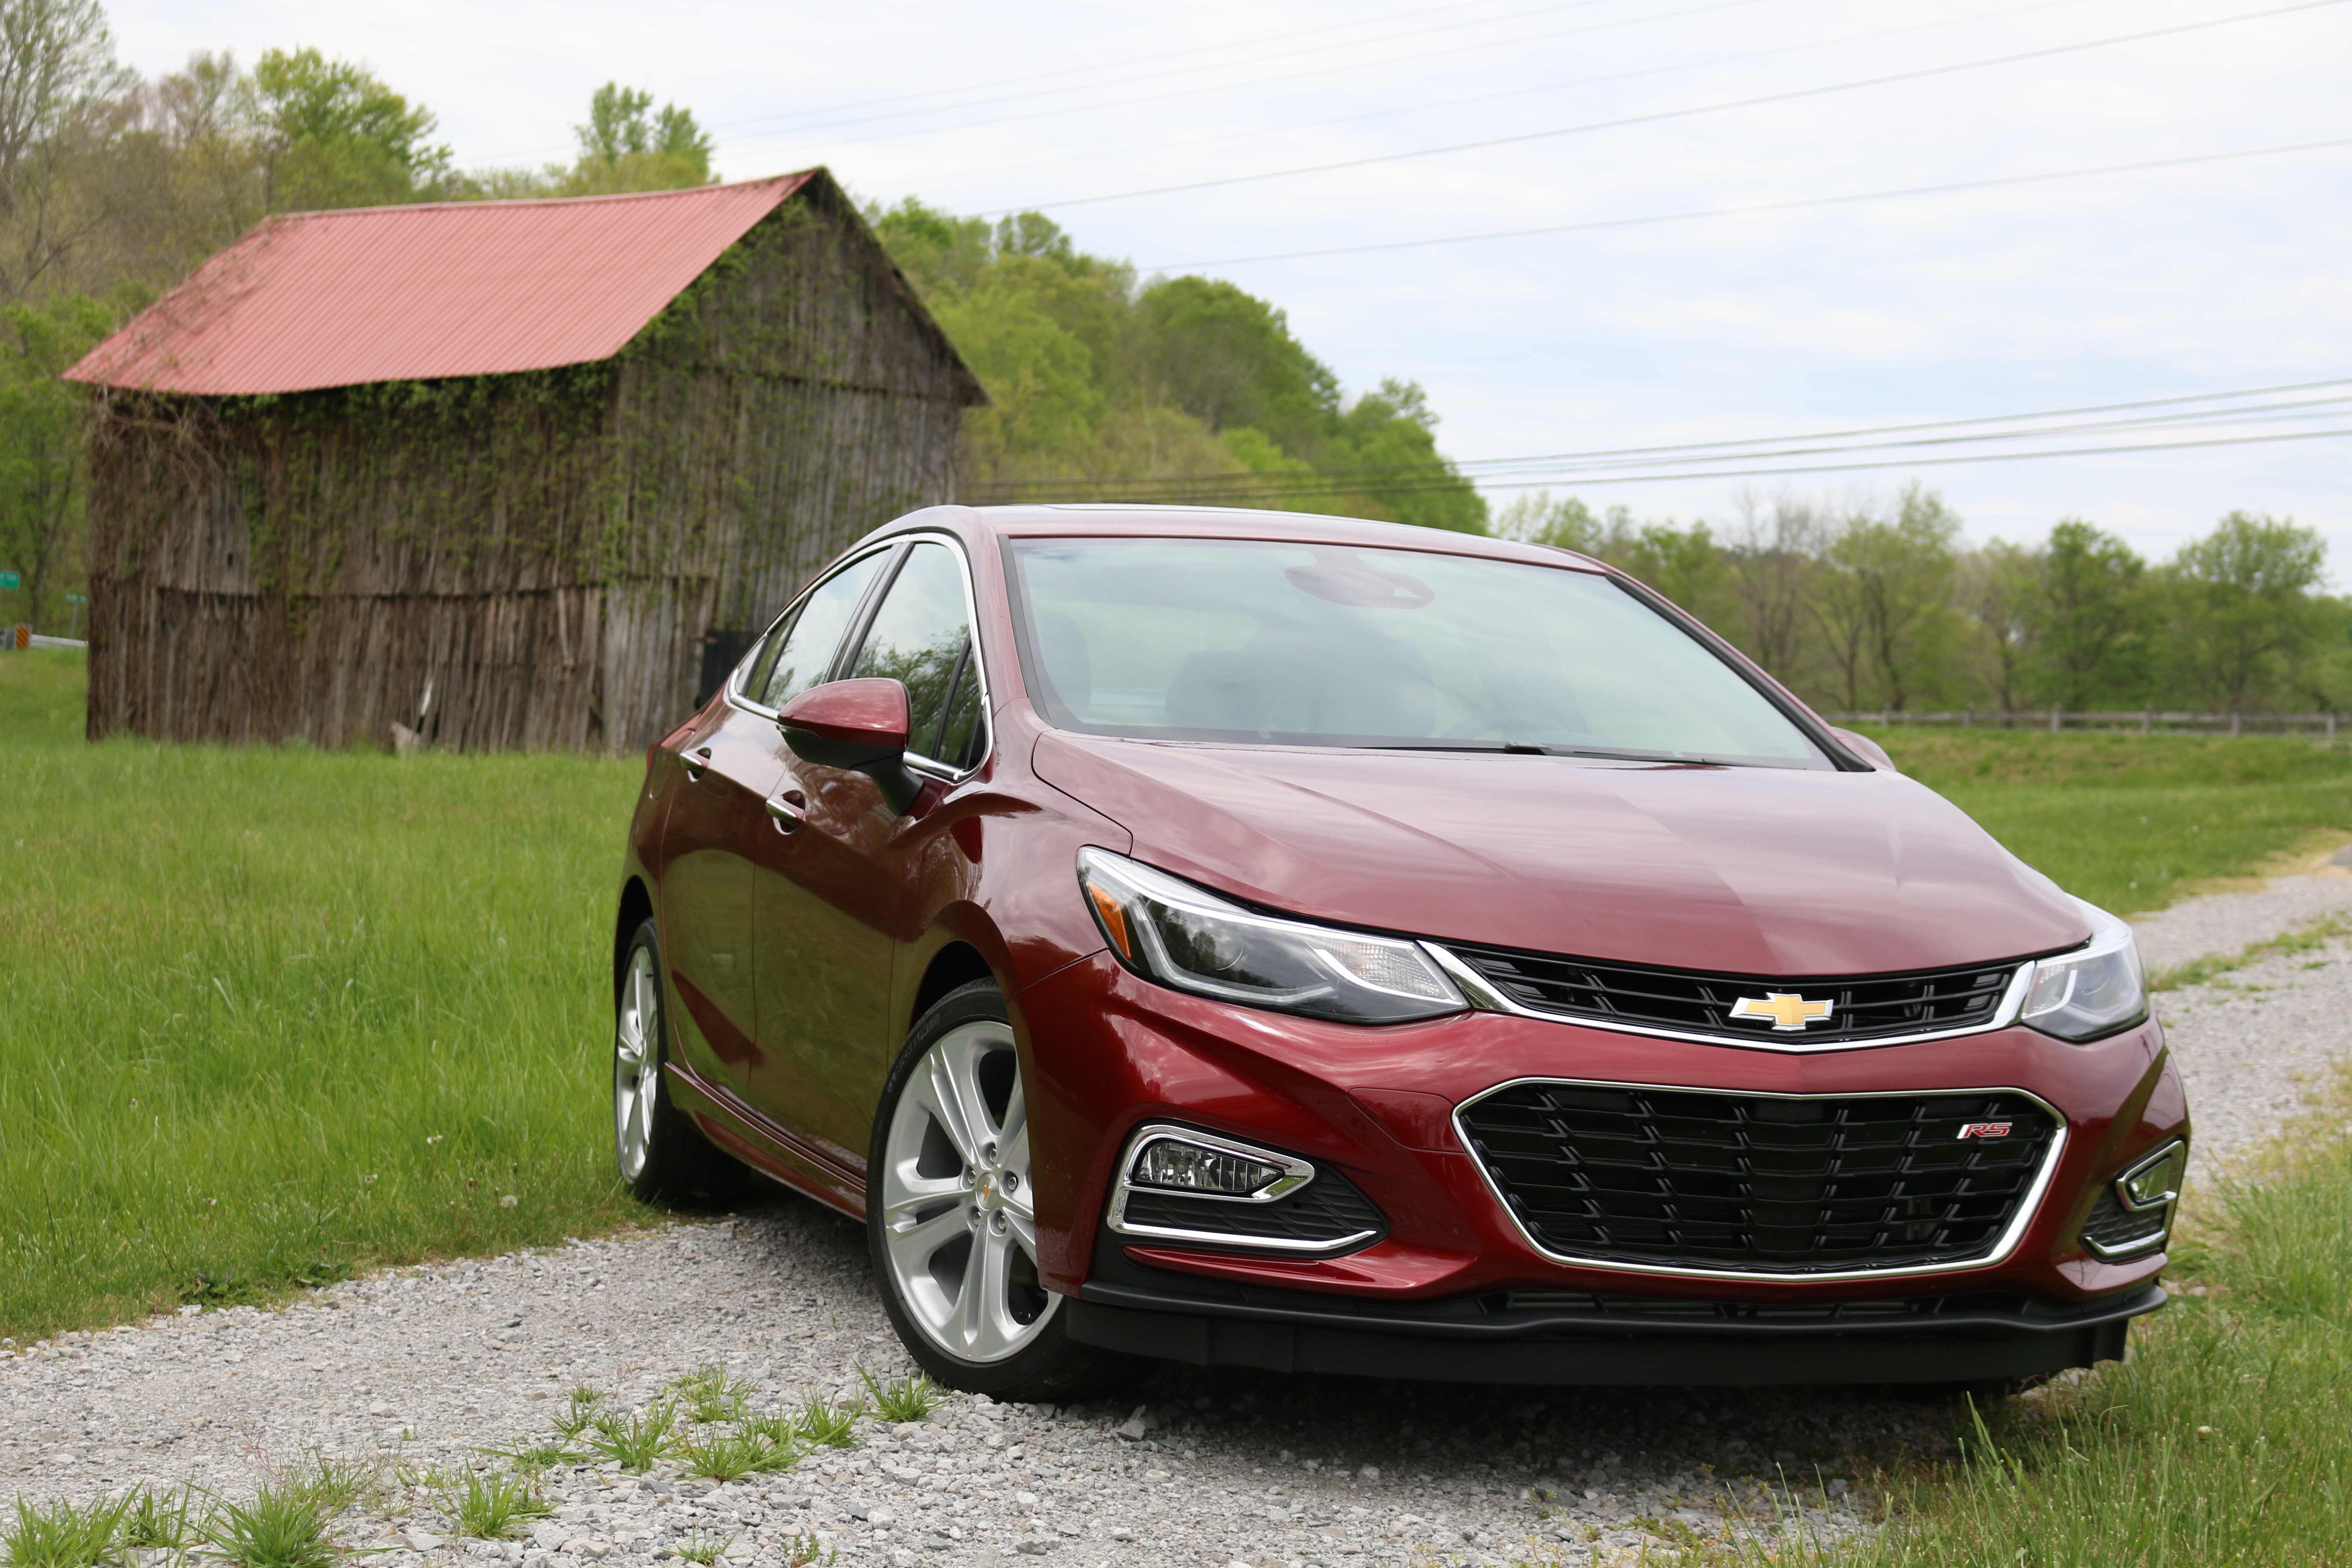 Chevrolet Cruze Hatchback mod specifications